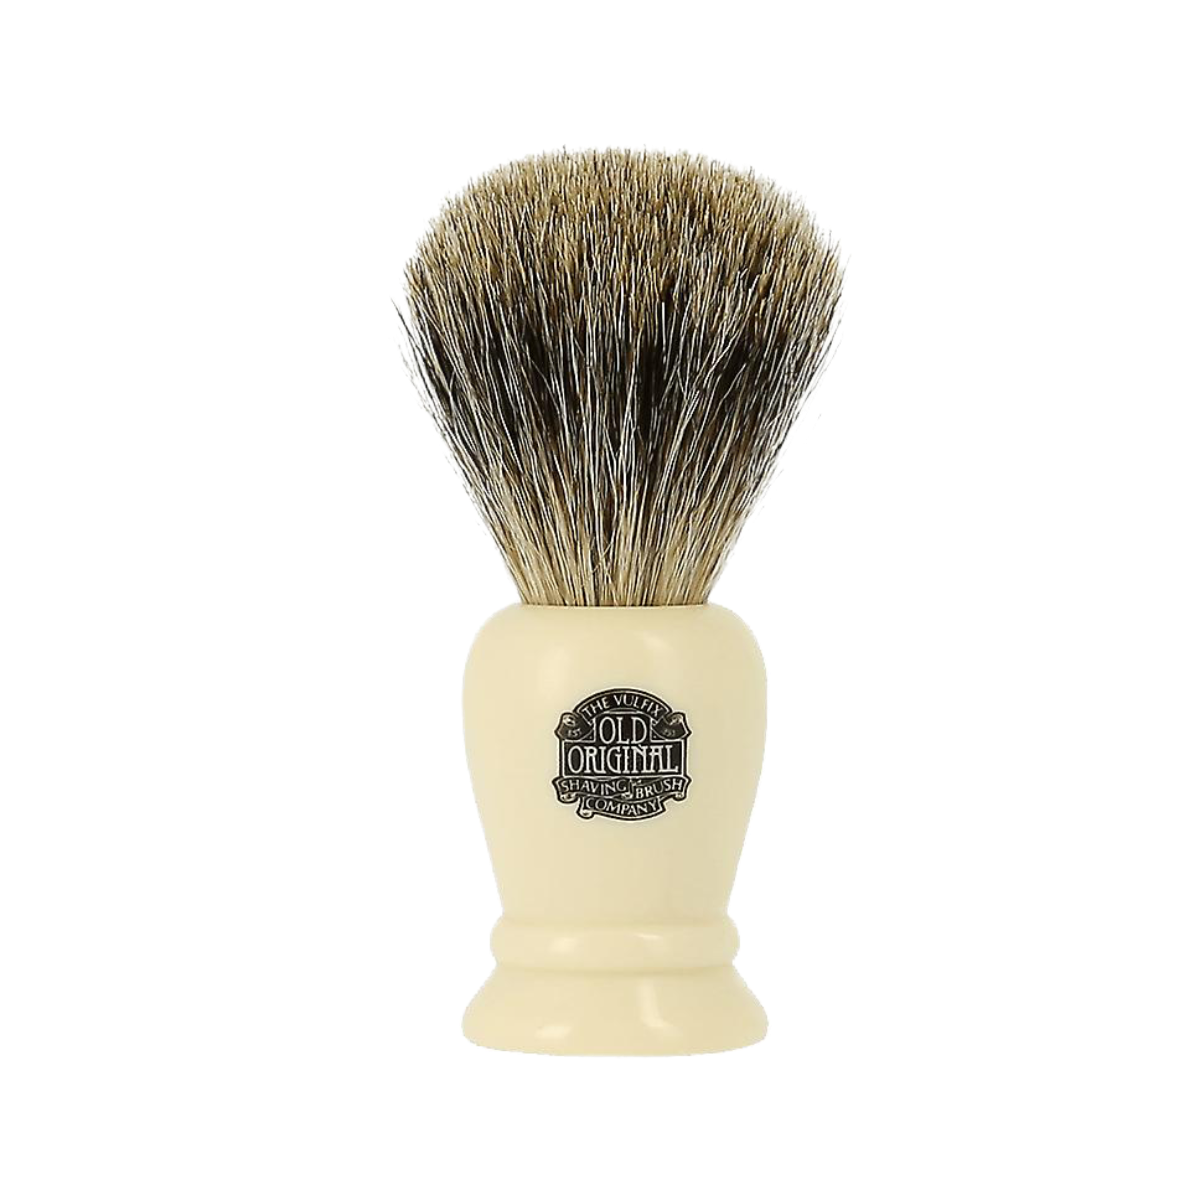 Vulfix 2197 - Pure Badger Shave Brush